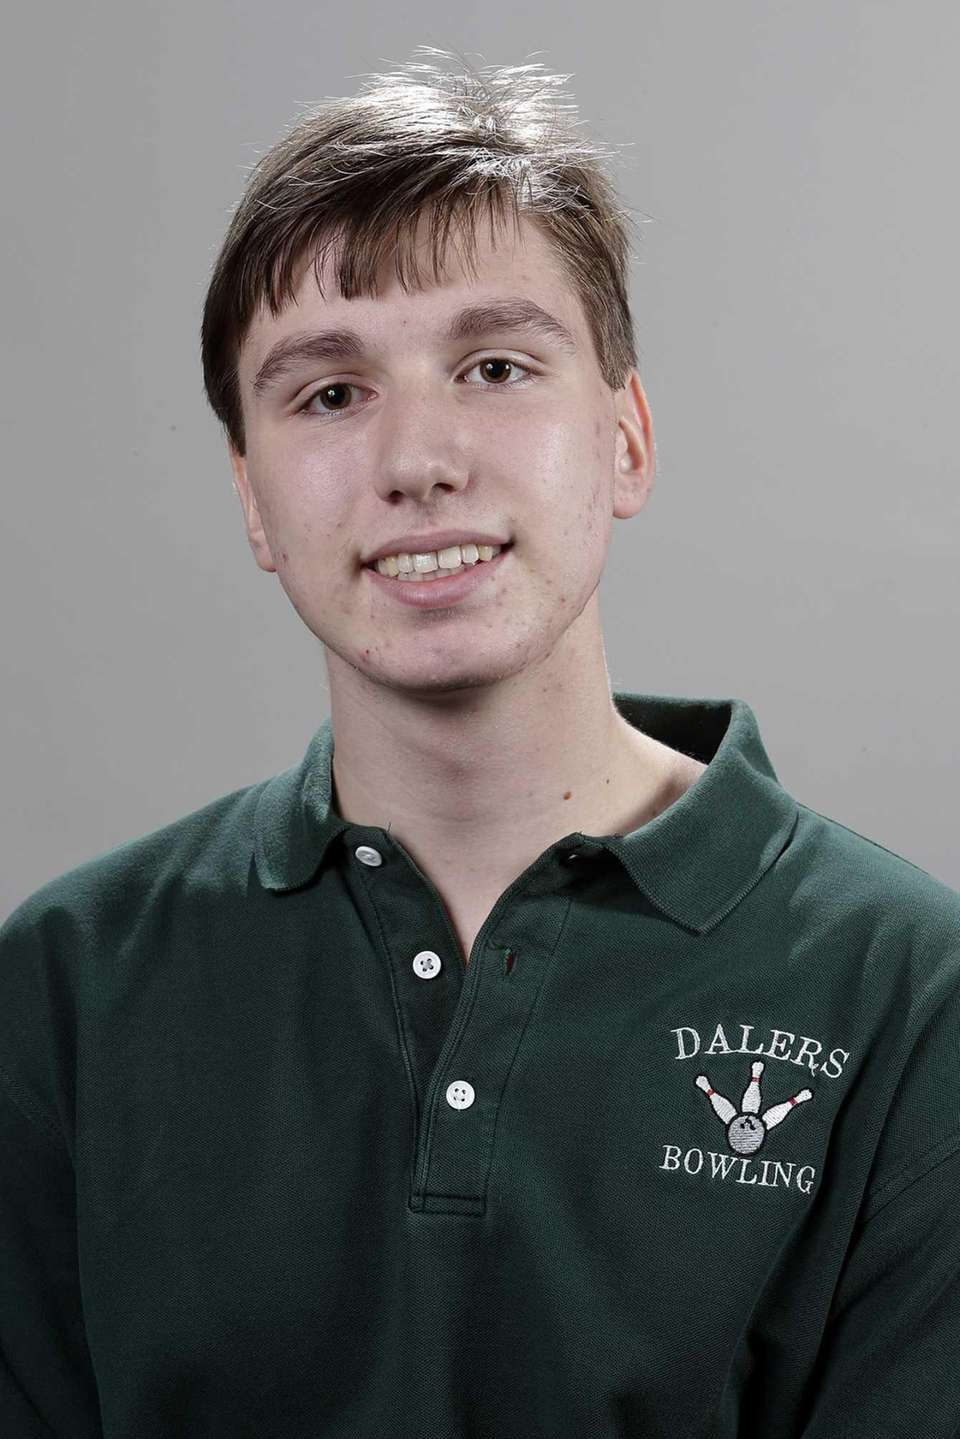 Valentine was one of Nassau's top bowlers last